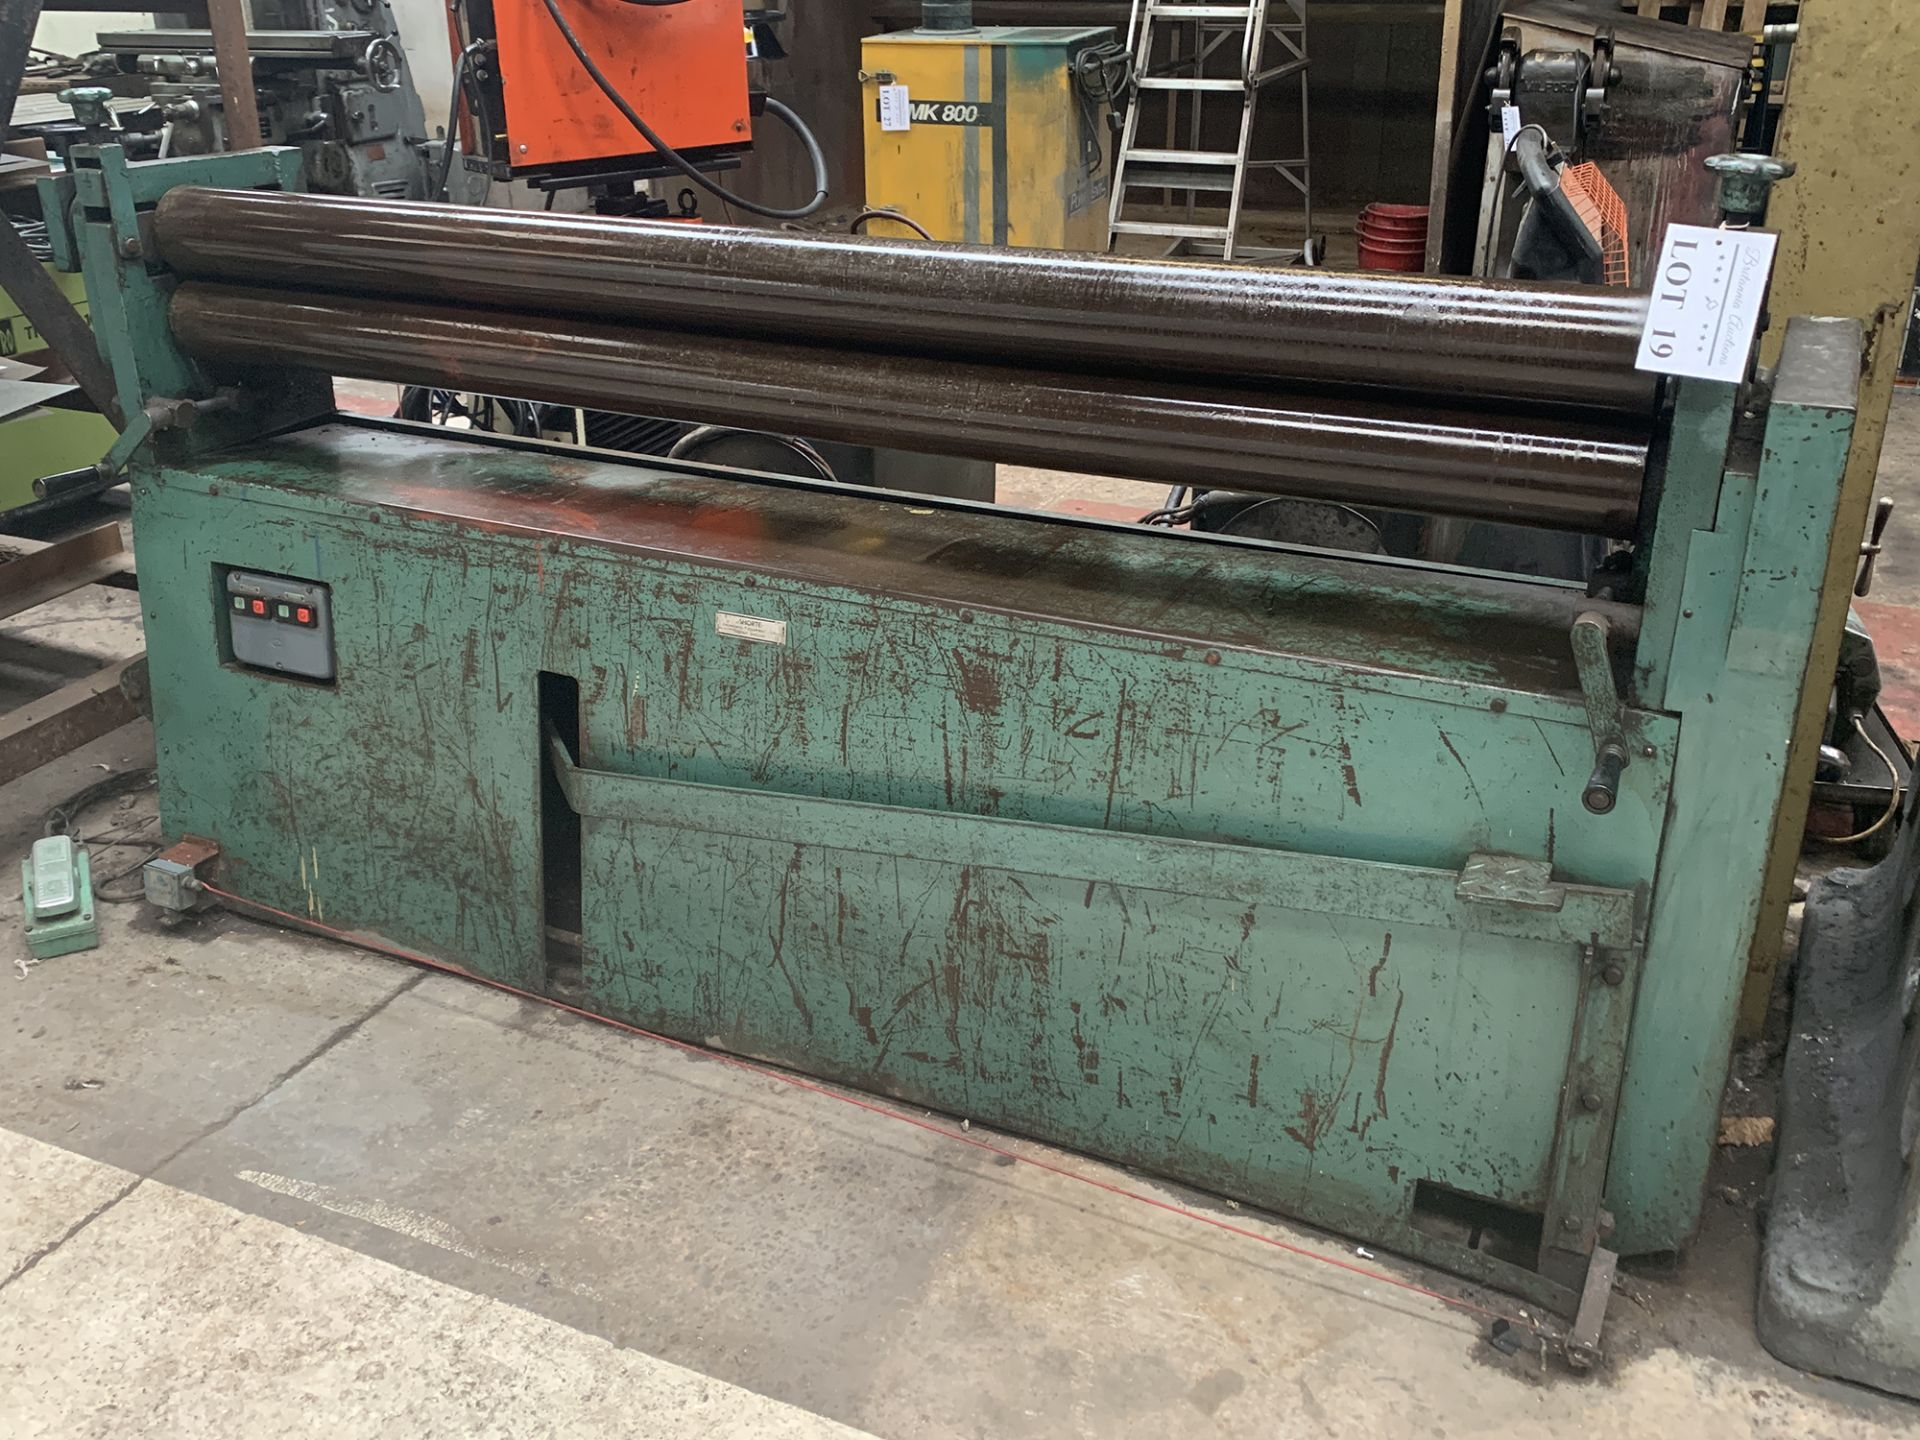 Lot 19 - Shorte Initial Pinch Powered Rolls. Capacity 80'' Length x 5'' Roll Diameter.